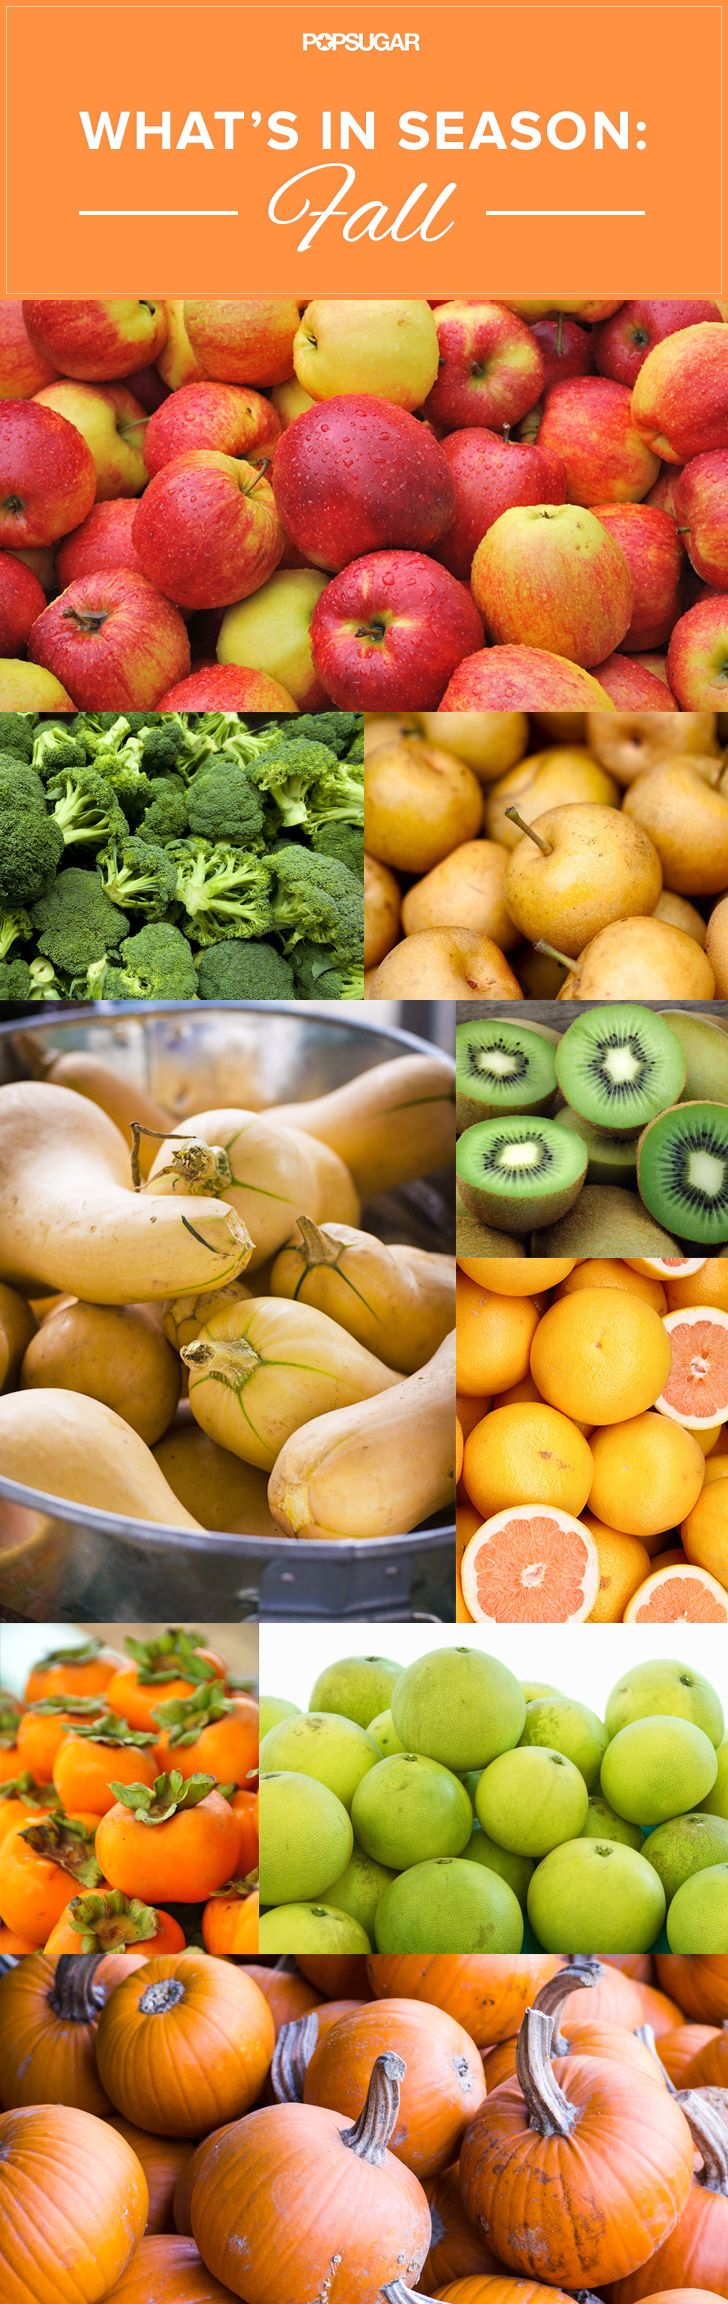 Your Ultimate Fall Produce Guide Healthy Vegetarian 400 x 300